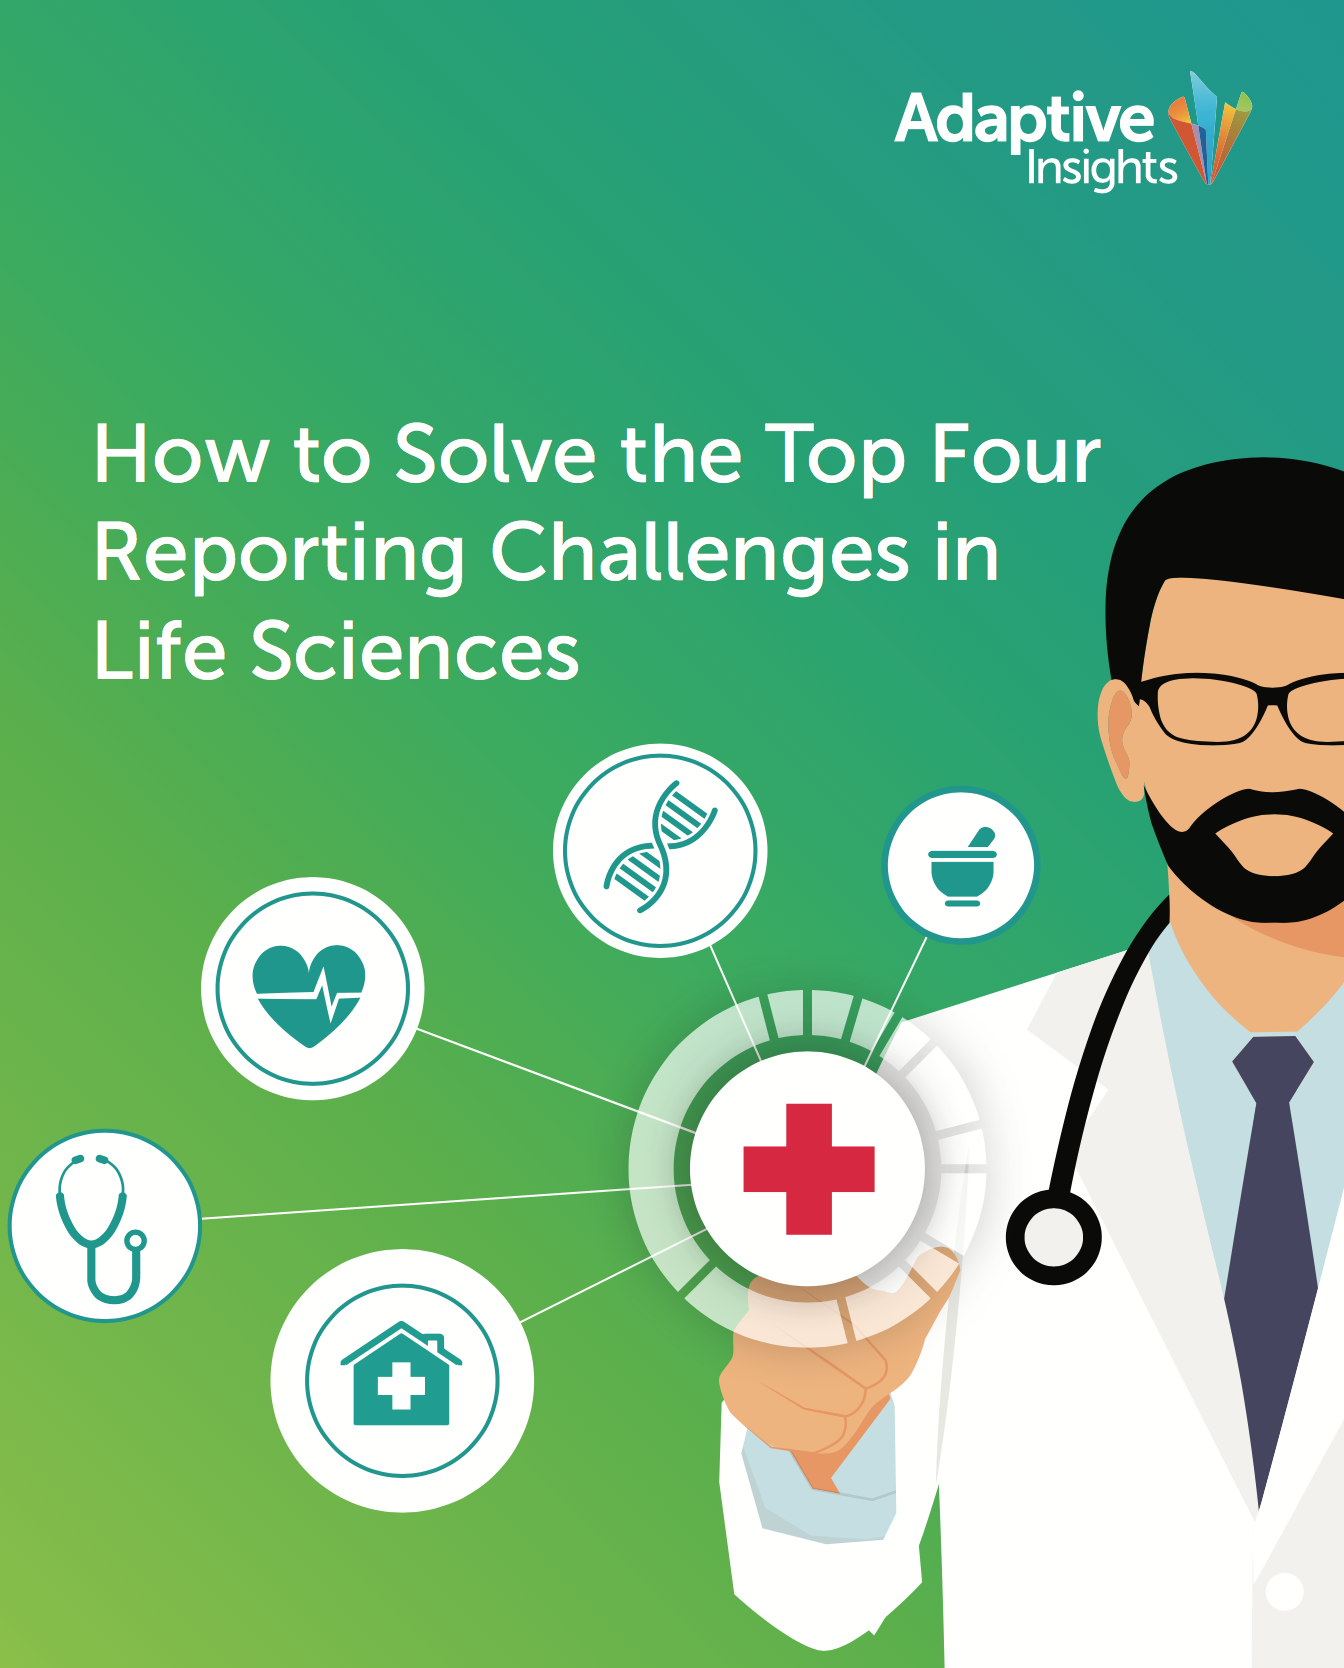 How to Solve the Top Four Reporting Challenges in Life Sciences Image